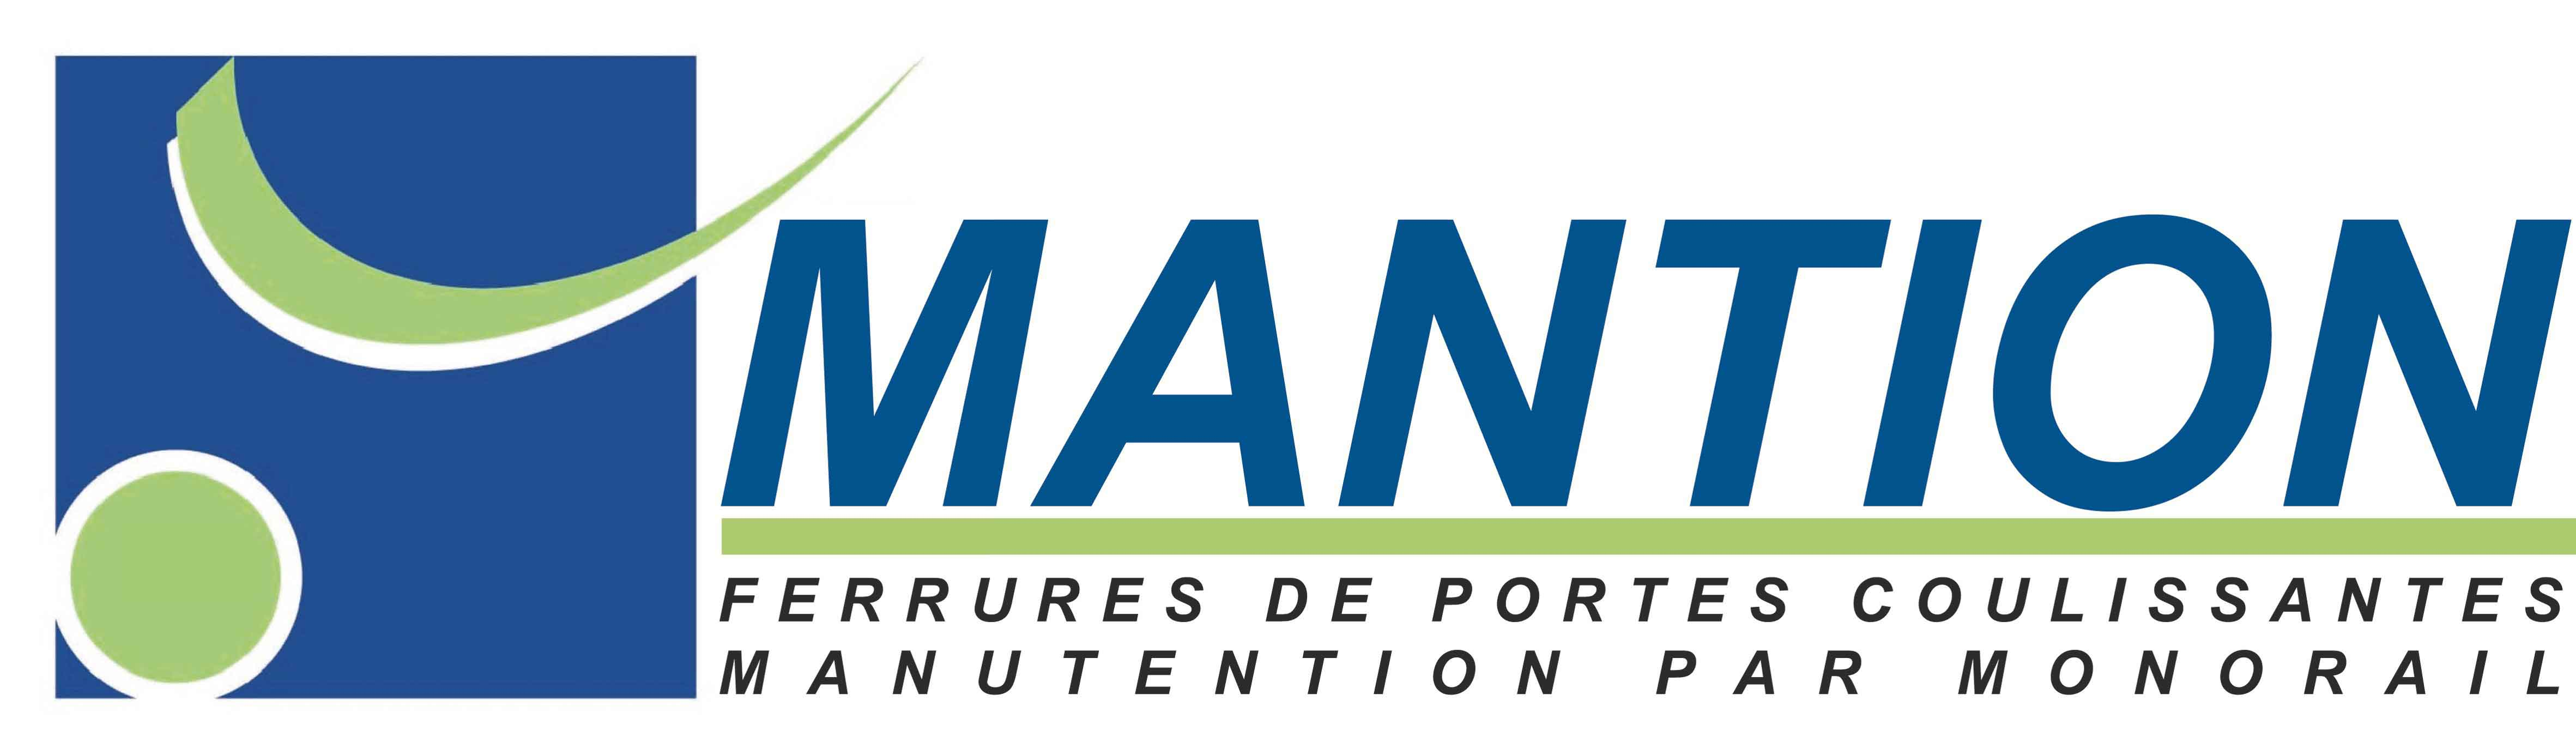 logo-mantion-fabricant-coulissants-batiment-industrie